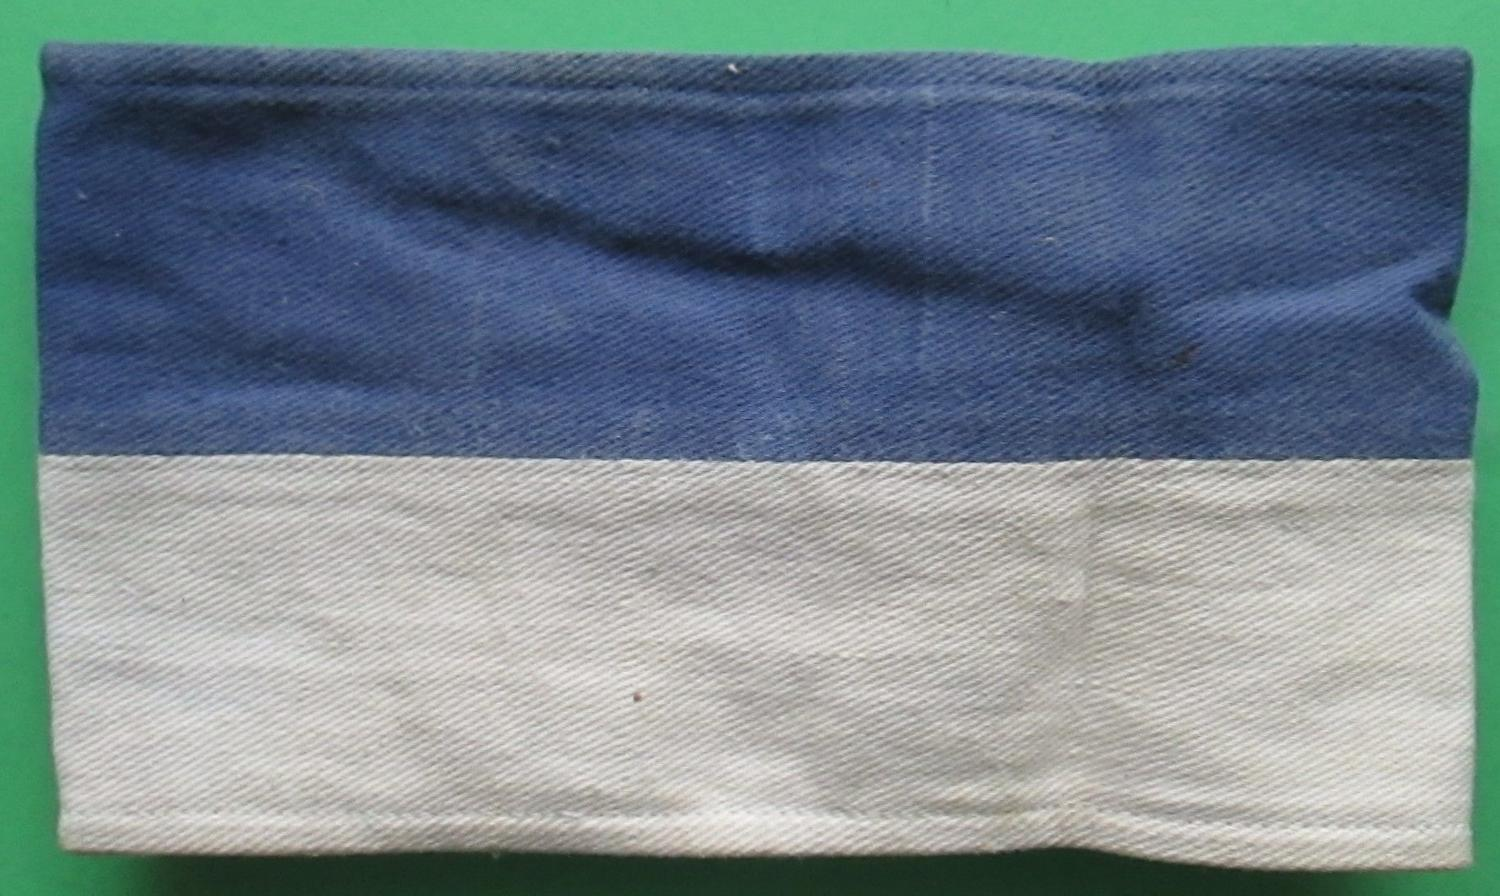 A ROYAL CORPS OF SIGNALS ARM BAND